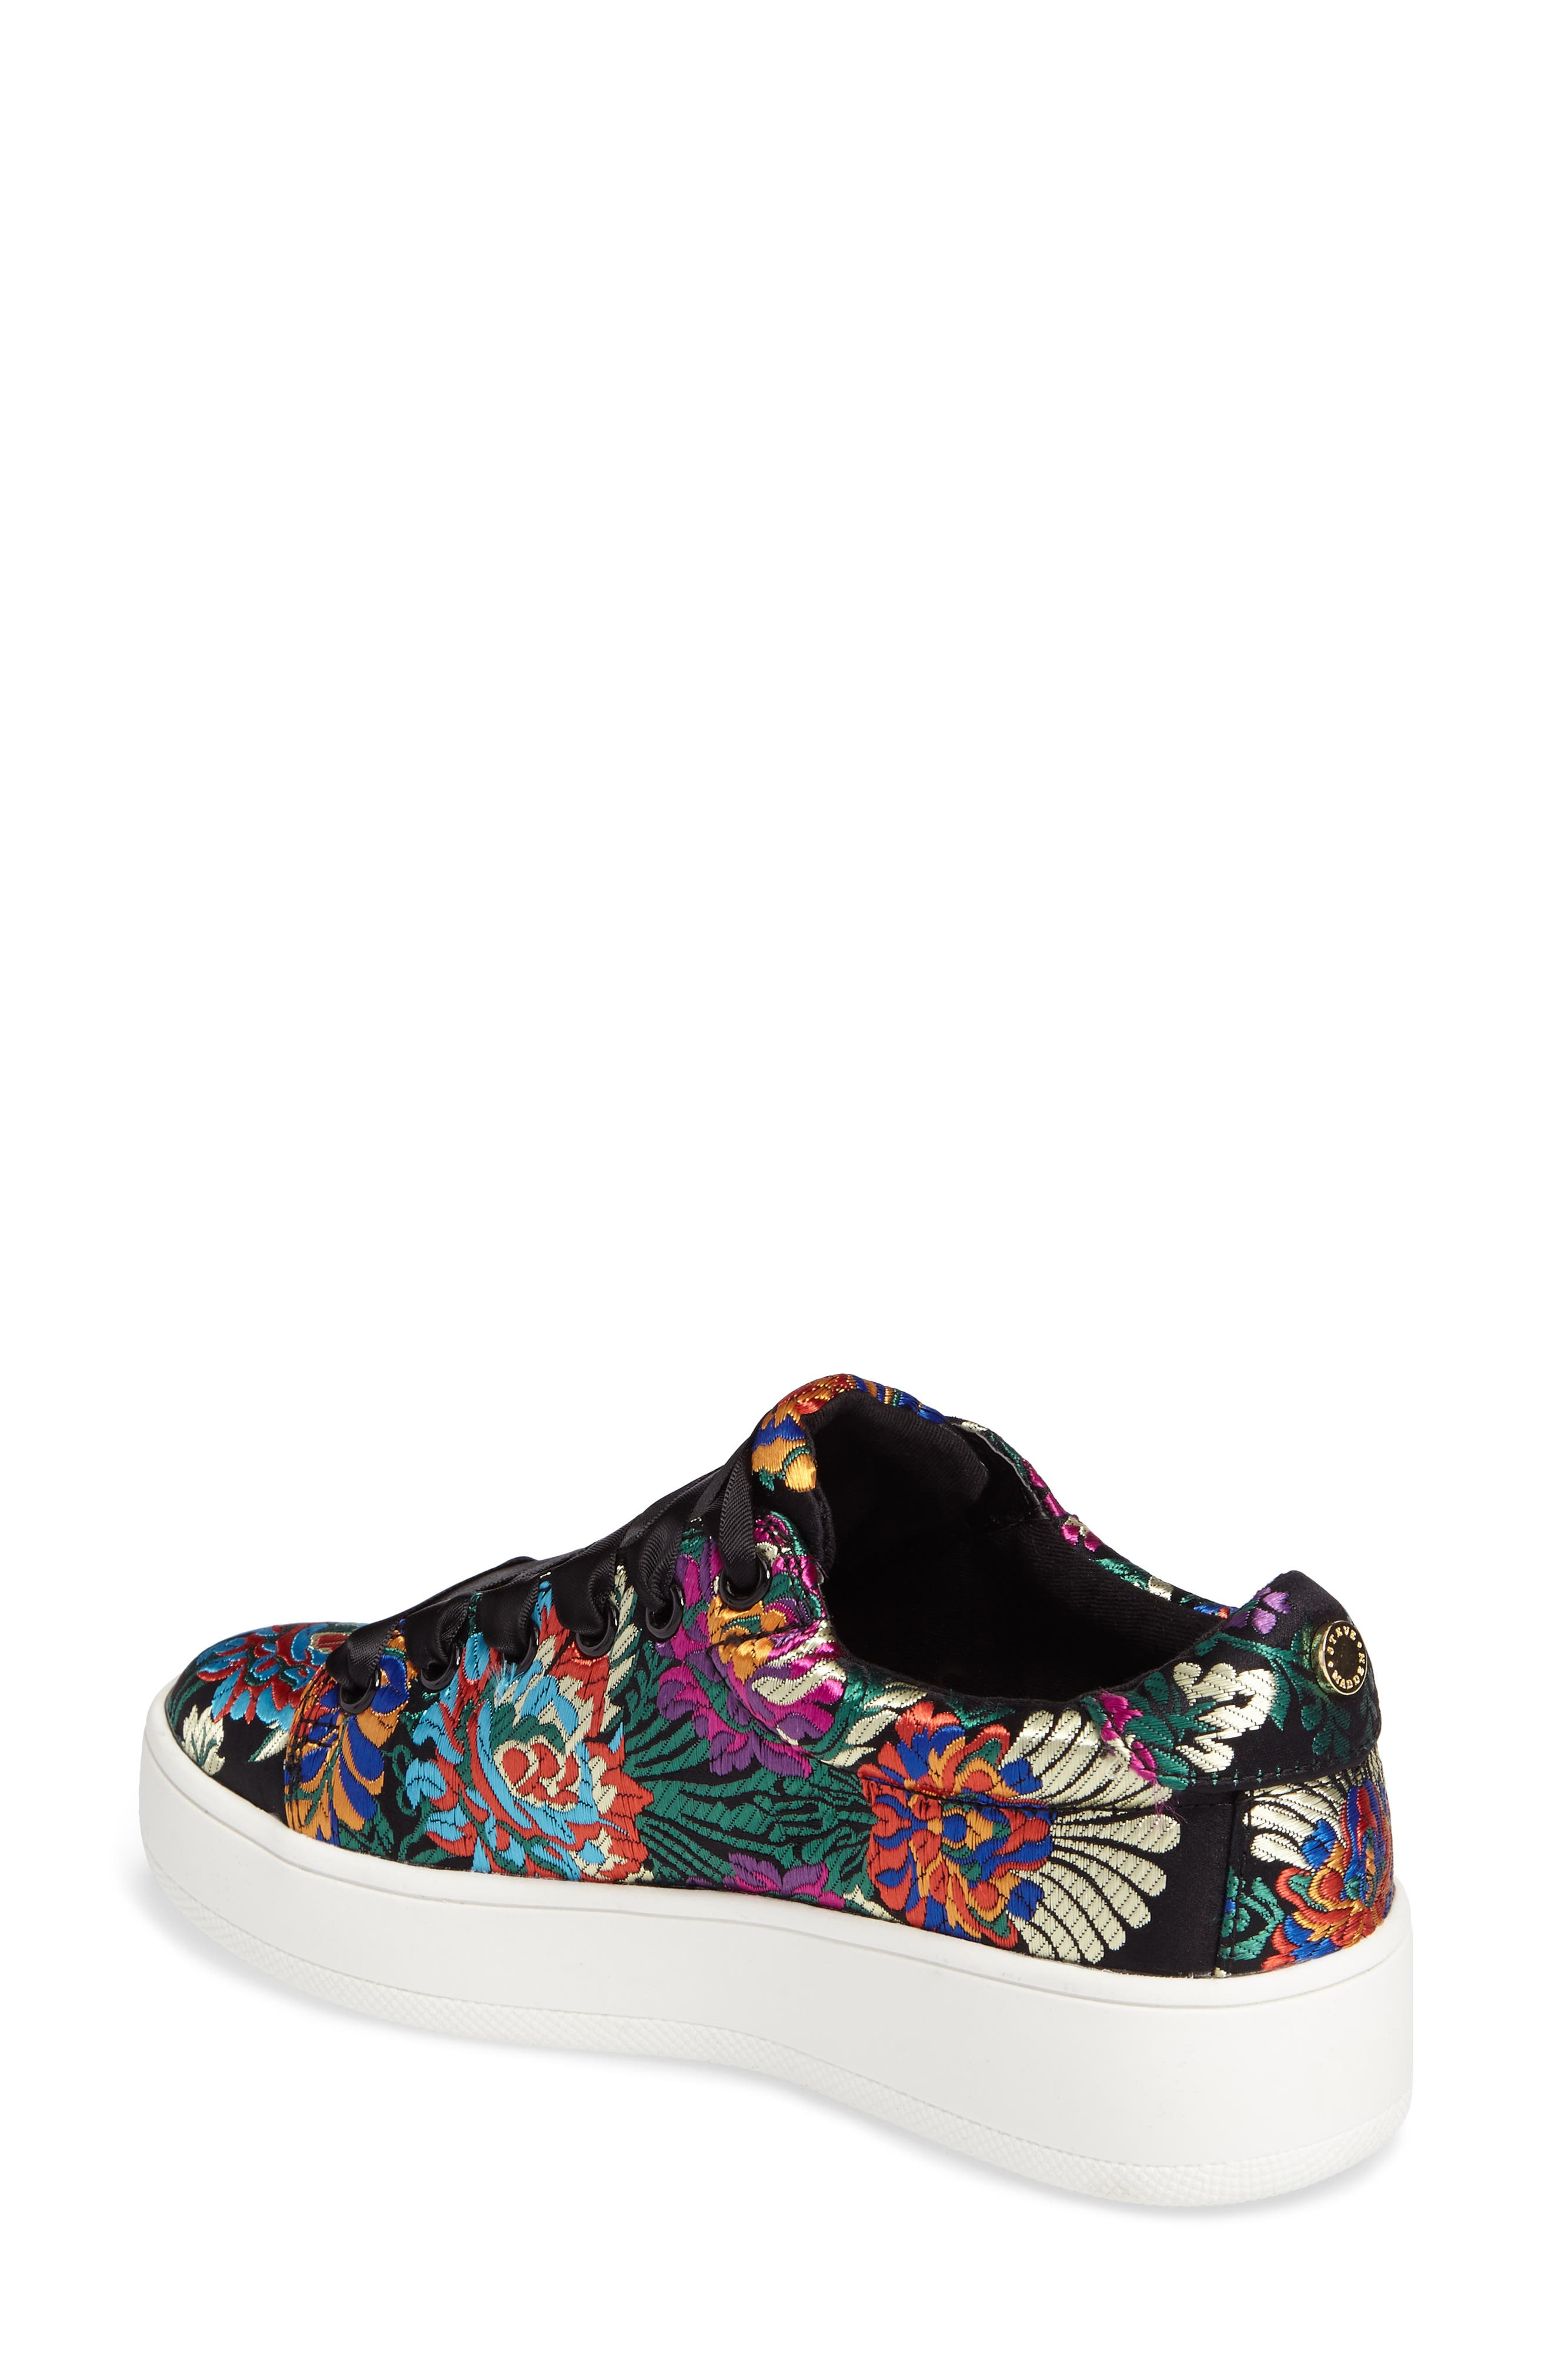 Brody Embroidered Flower Sneaker,                             Alternate thumbnail 2, color,                             Multi